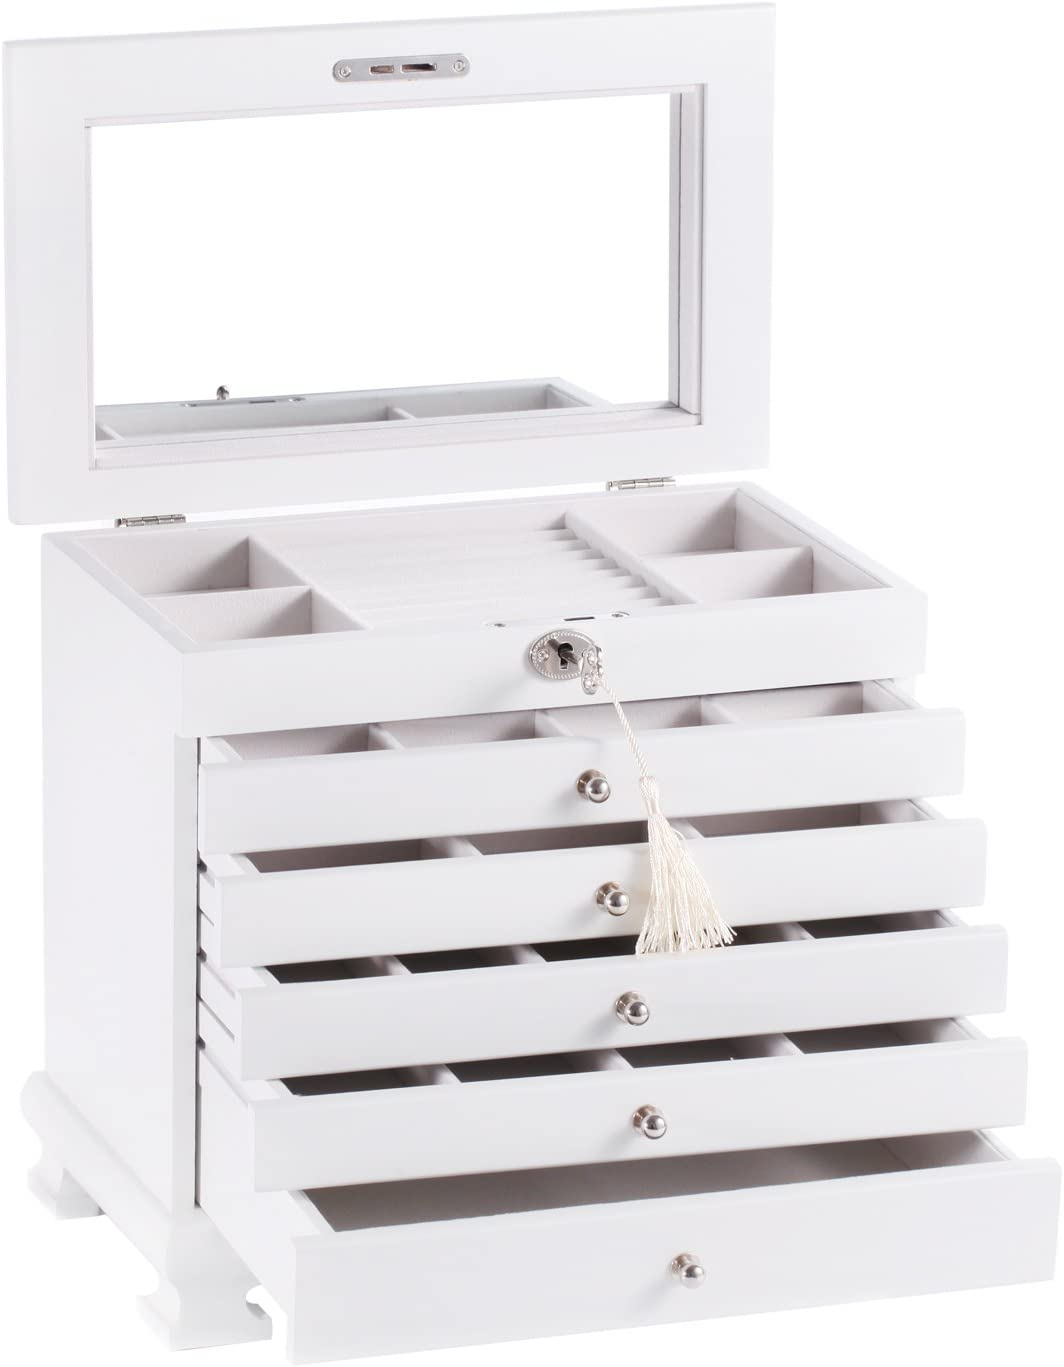 Large Wooden Jewellery Box Armoire Earrling Bracelet Organizer 6 Layers Mirror (WHITE)